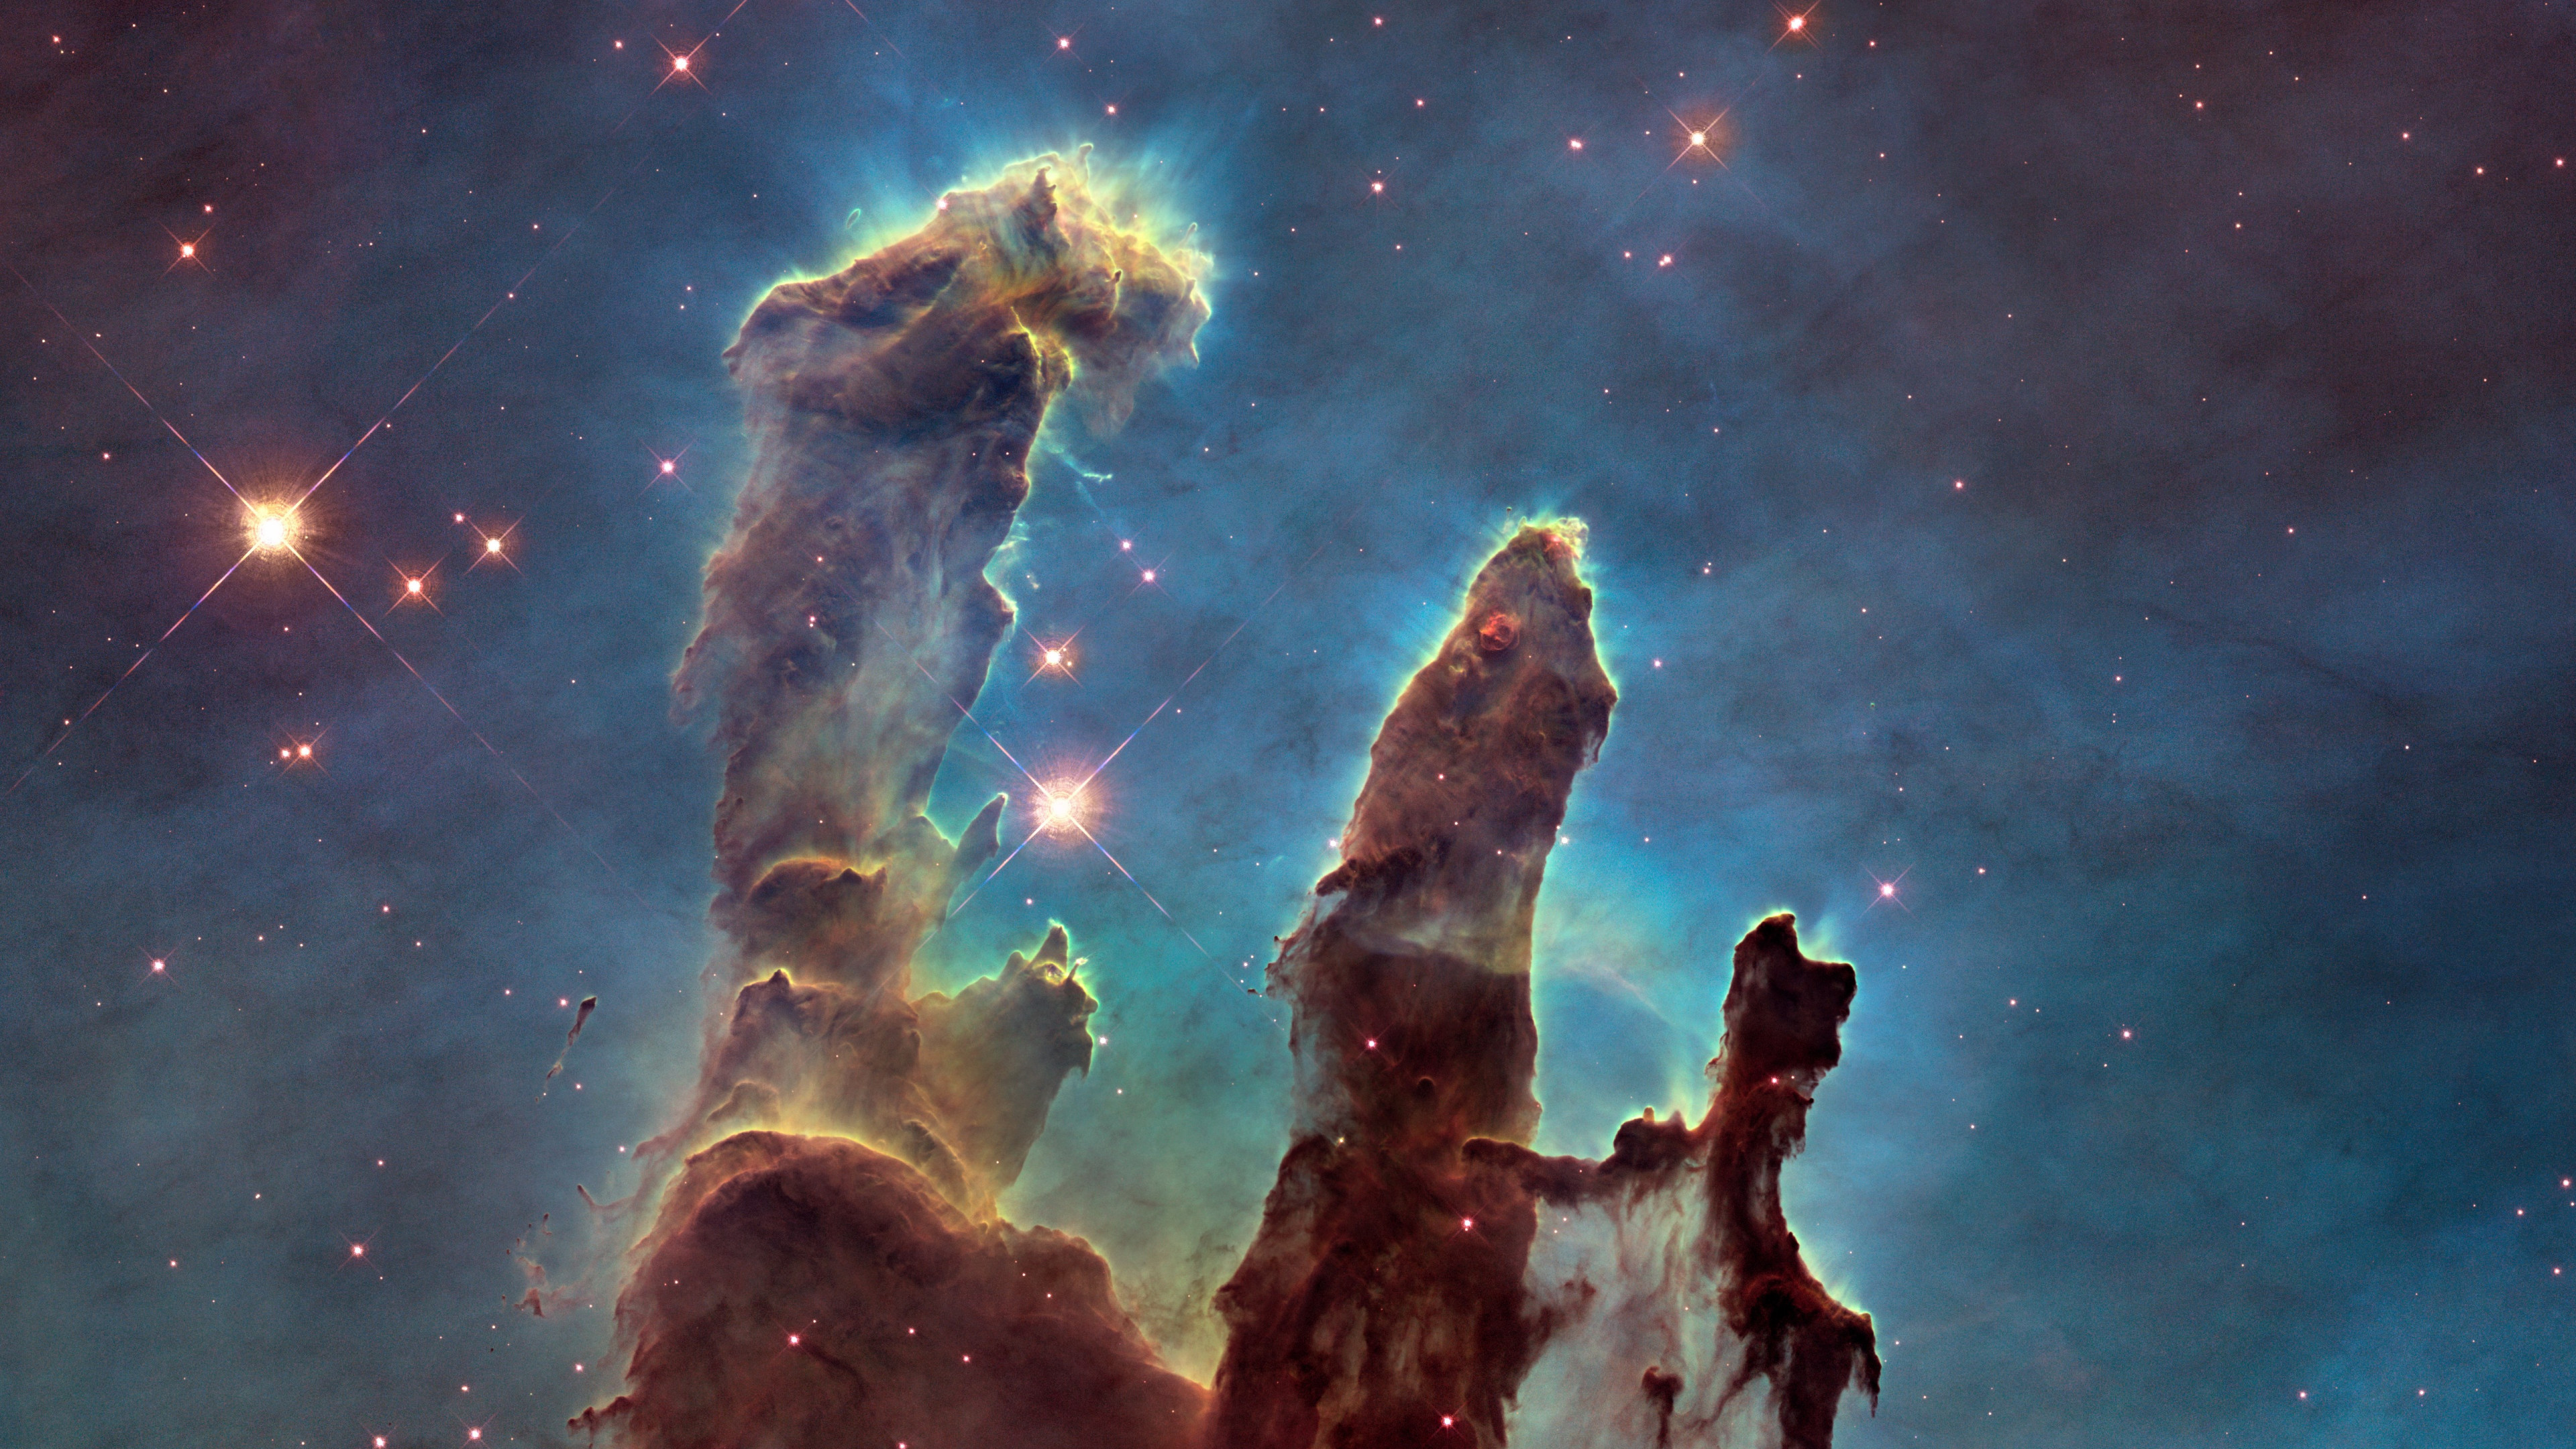 The Eagle Nebula's Pillars of Creation wallpaper 3840x2160